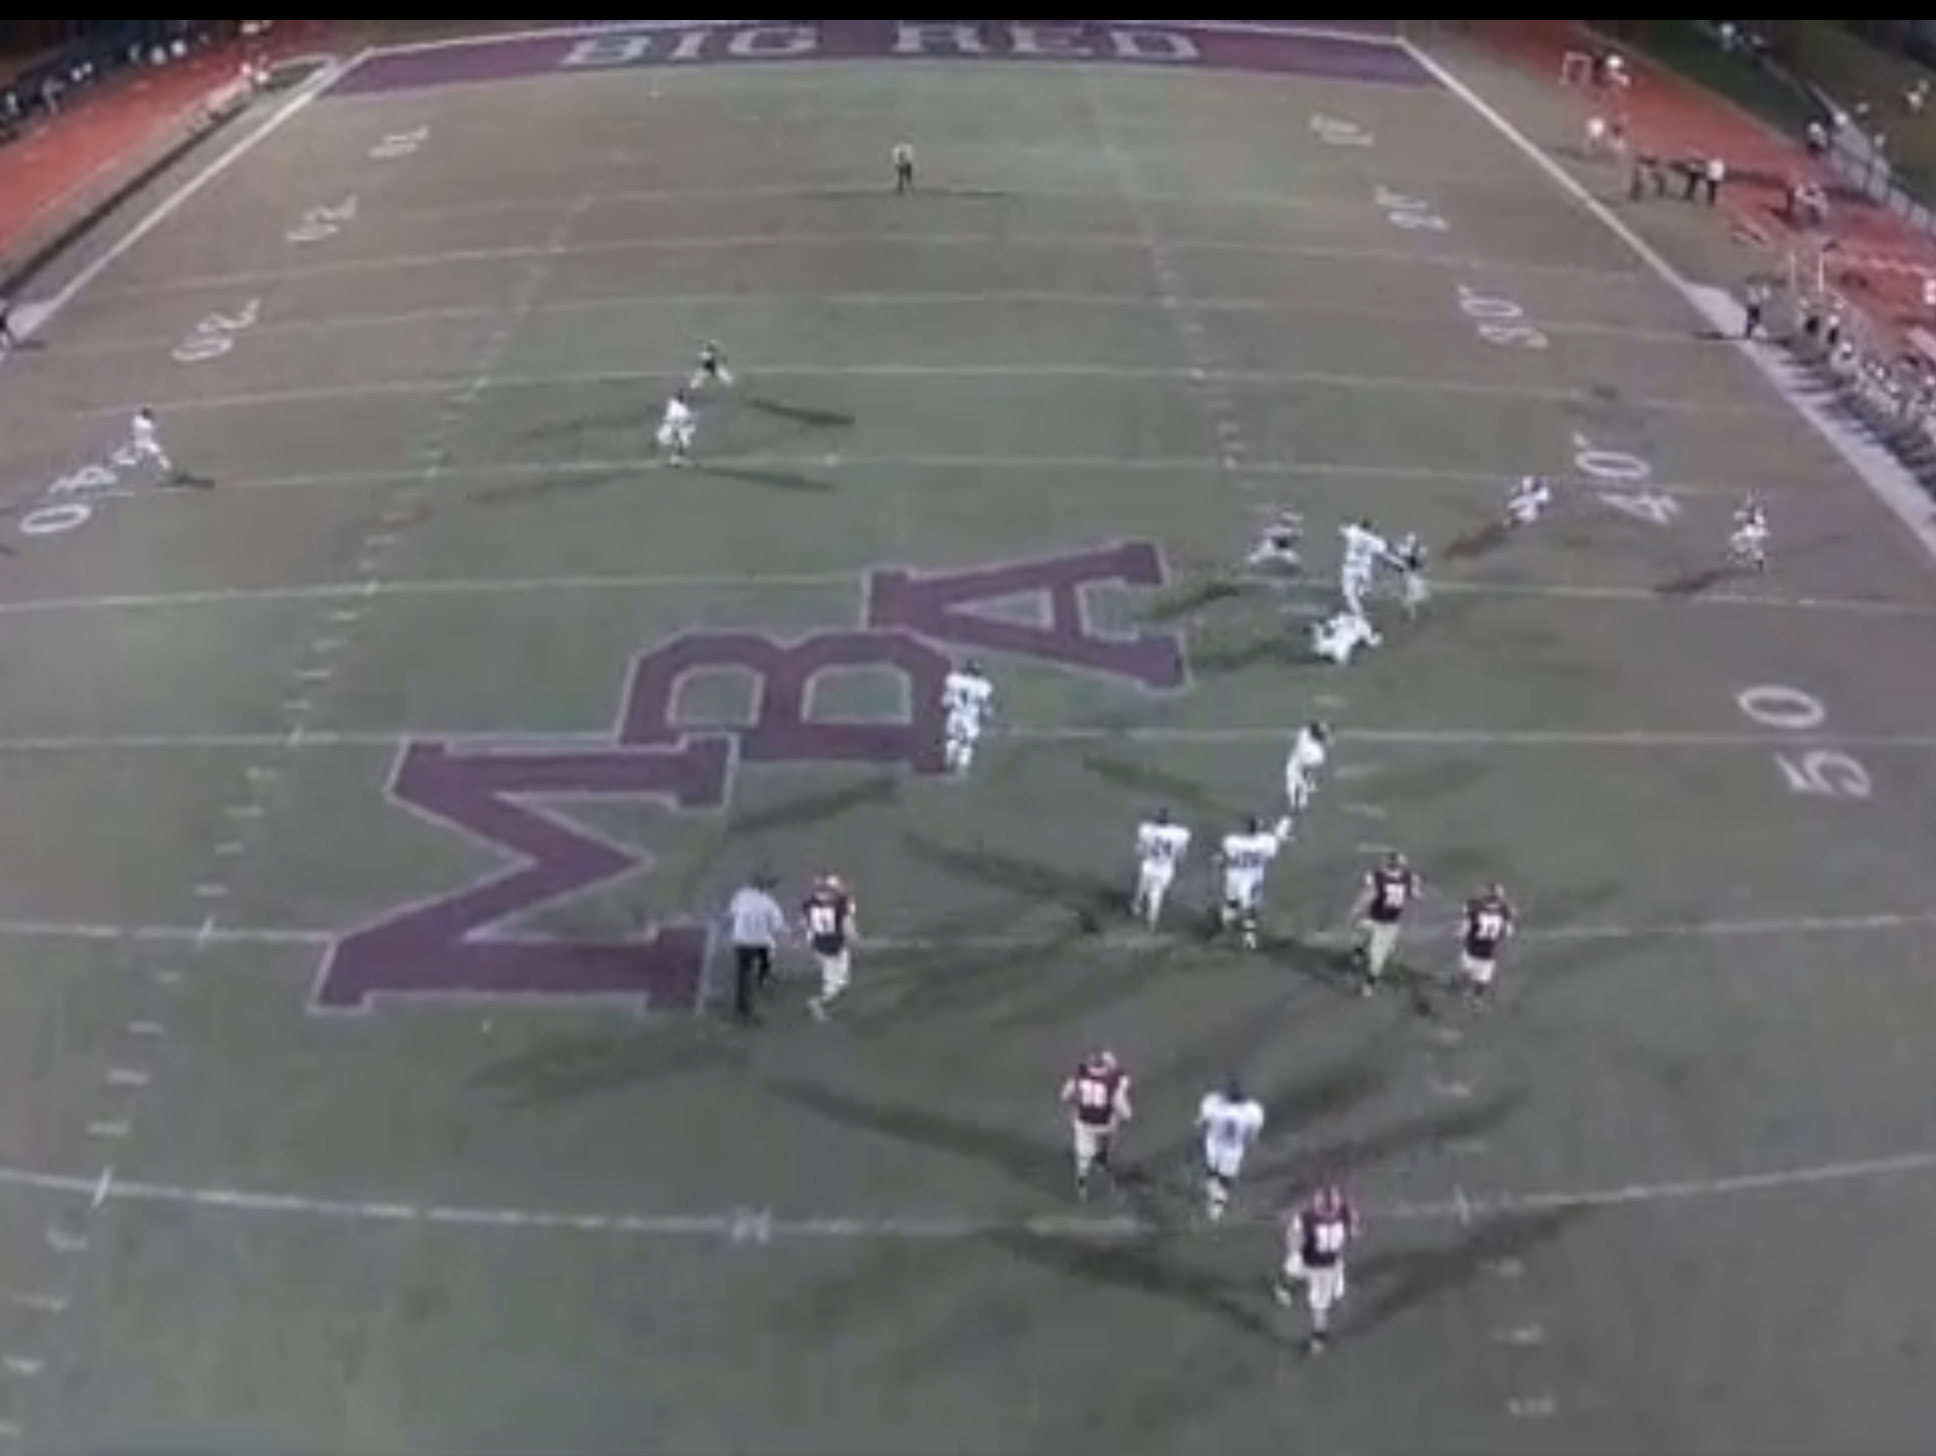 A still from video taken by a drone shows a play during the Ensworth-MBA game in October 2014.